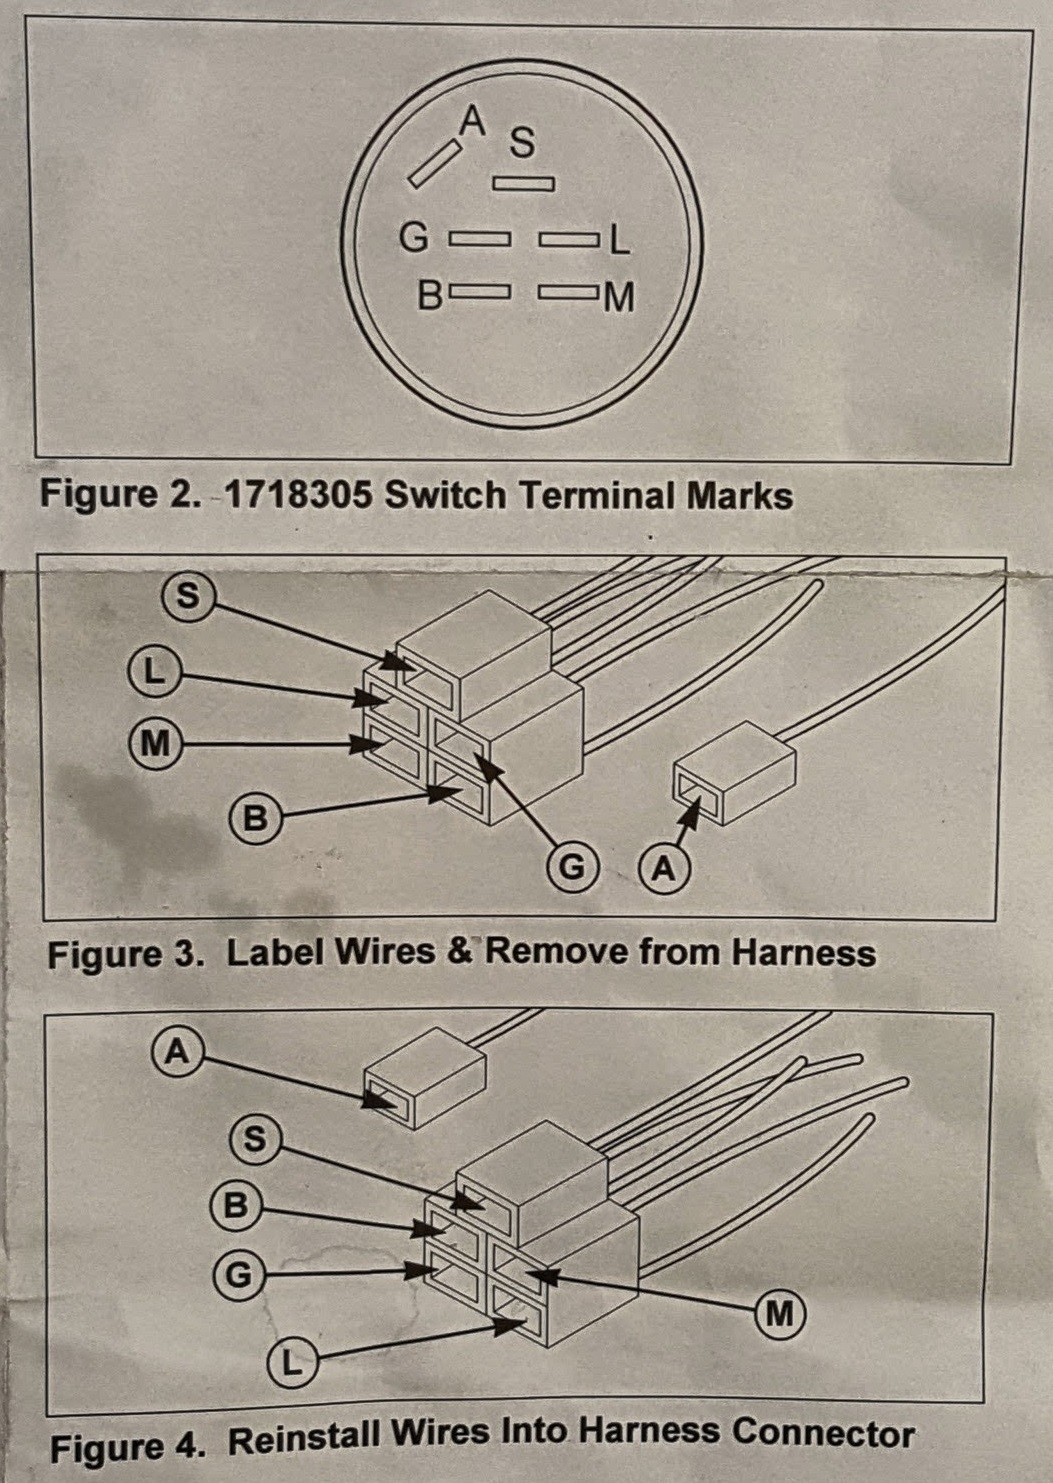 Broadmor Archives Ronins Grips Caltric Wiring Diagram Figure 2 Shows The Identifying Marks For Plastic 1718305 Switch And Exactly Matched What I Had